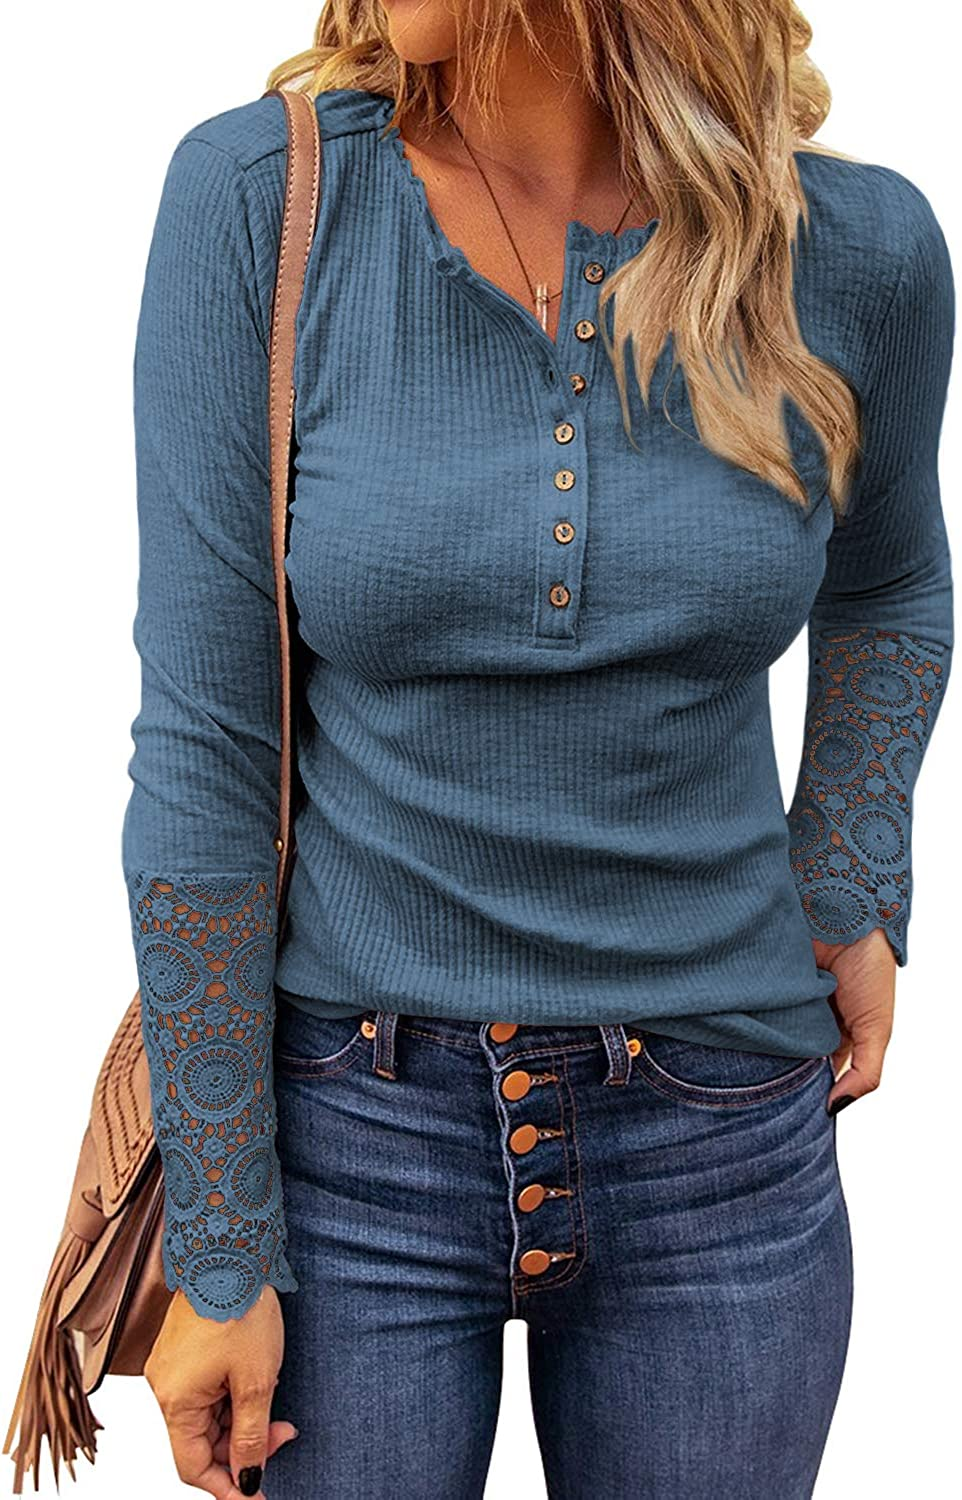 Women's Long Sleeve V Neck Button Up Blouses Shirts Slim Fit Lace Sleeves Ribbed Knit Casual Top Tunic